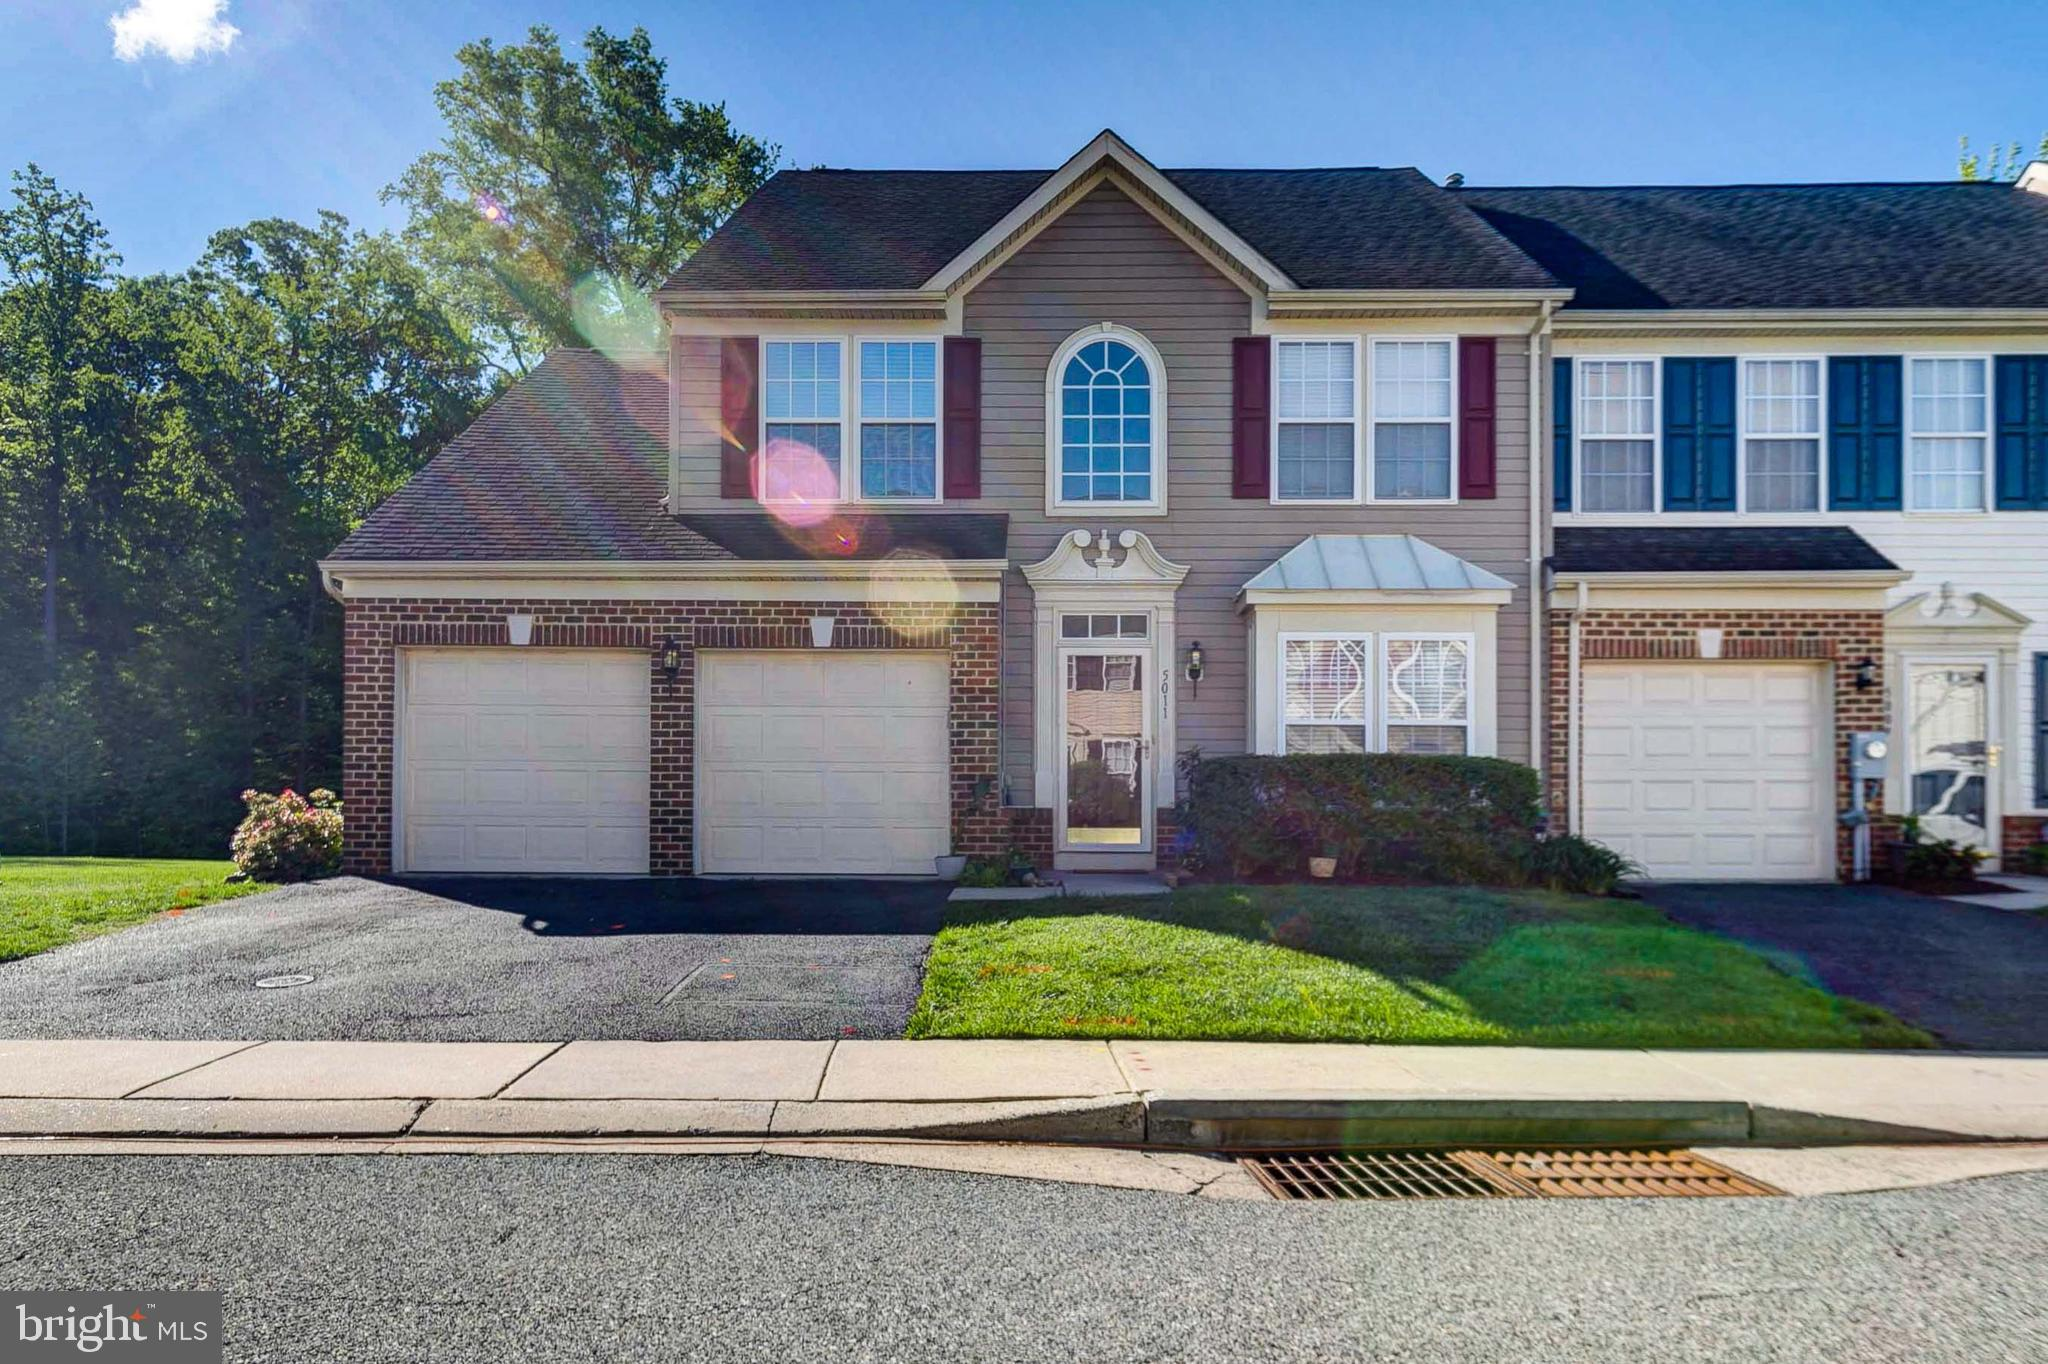 Updated 3 Bedroom 2 1/2 Bath home with bump outs in the living room/sun room & master bedroom!  Main